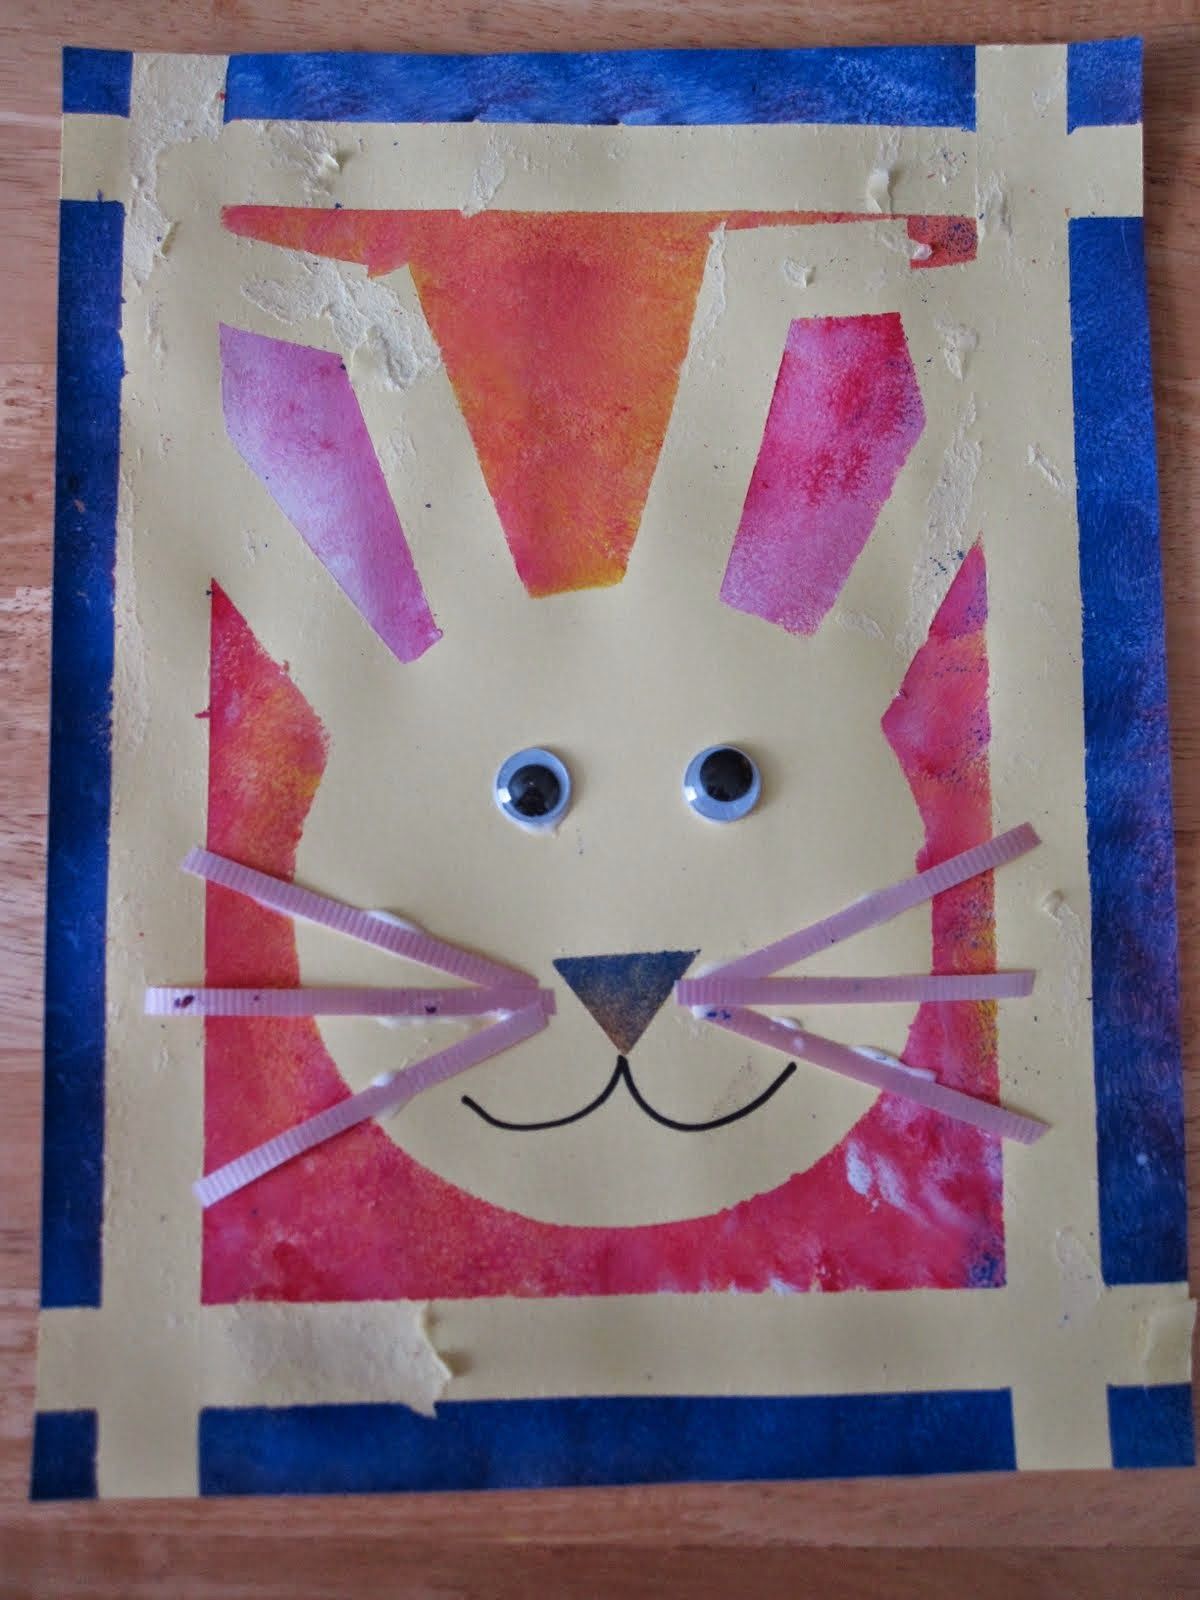 Toddler Approved 9 Bunny Crafts And Activities For Toddlers And Preschoolers